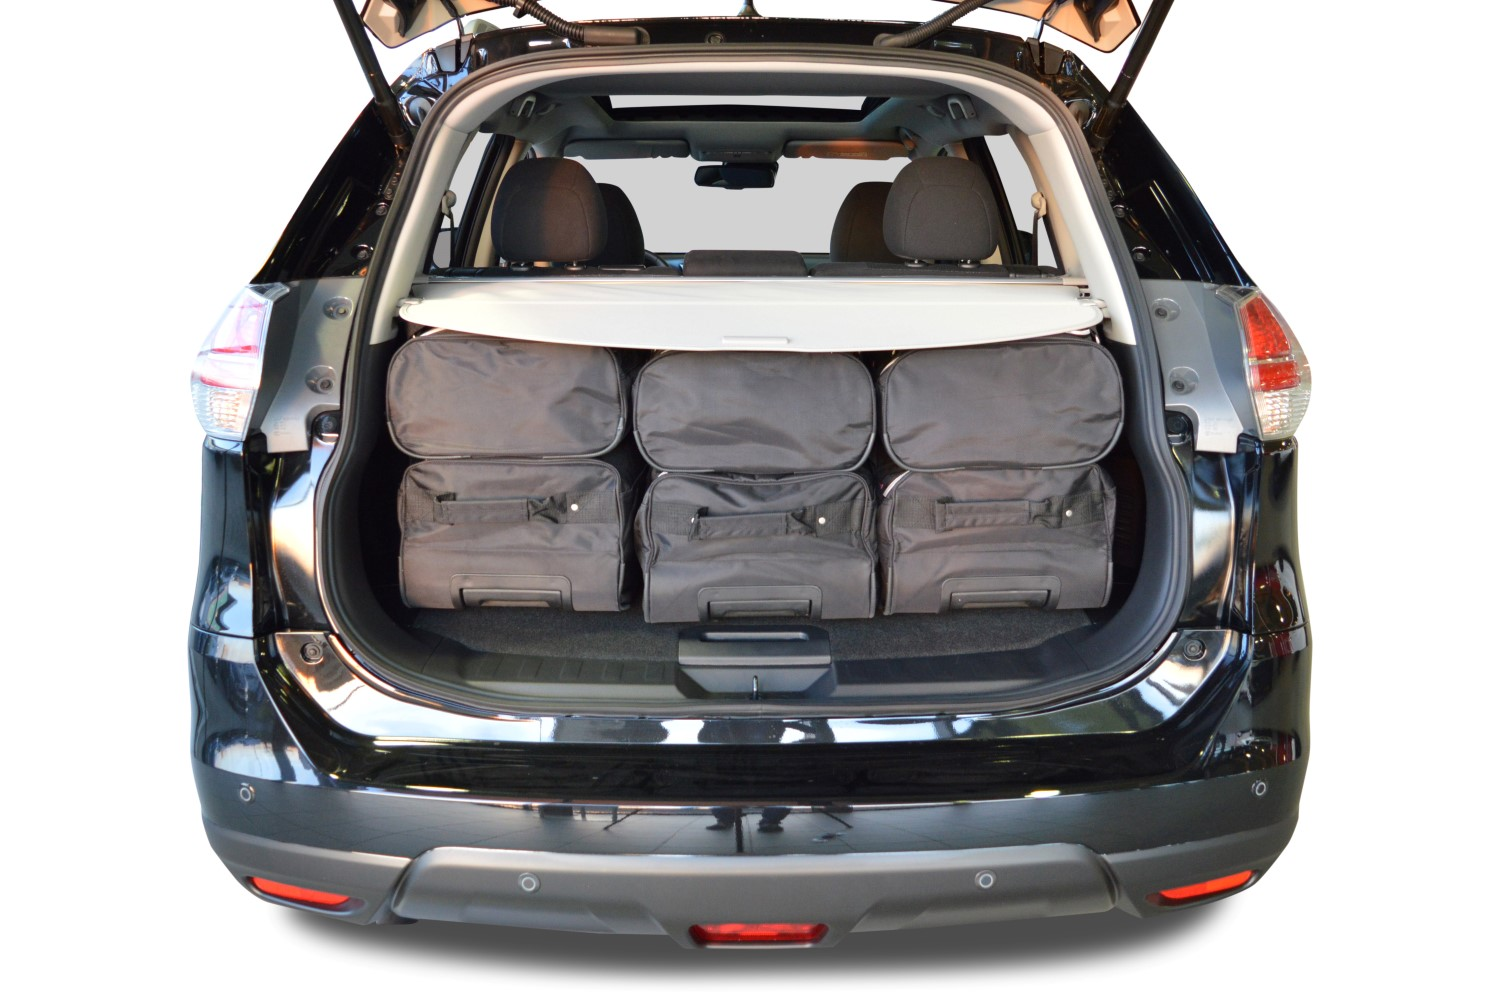 x trail iii t32 2013 nissan x trail t32 2013. Black Bedroom Furniture Sets. Home Design Ideas